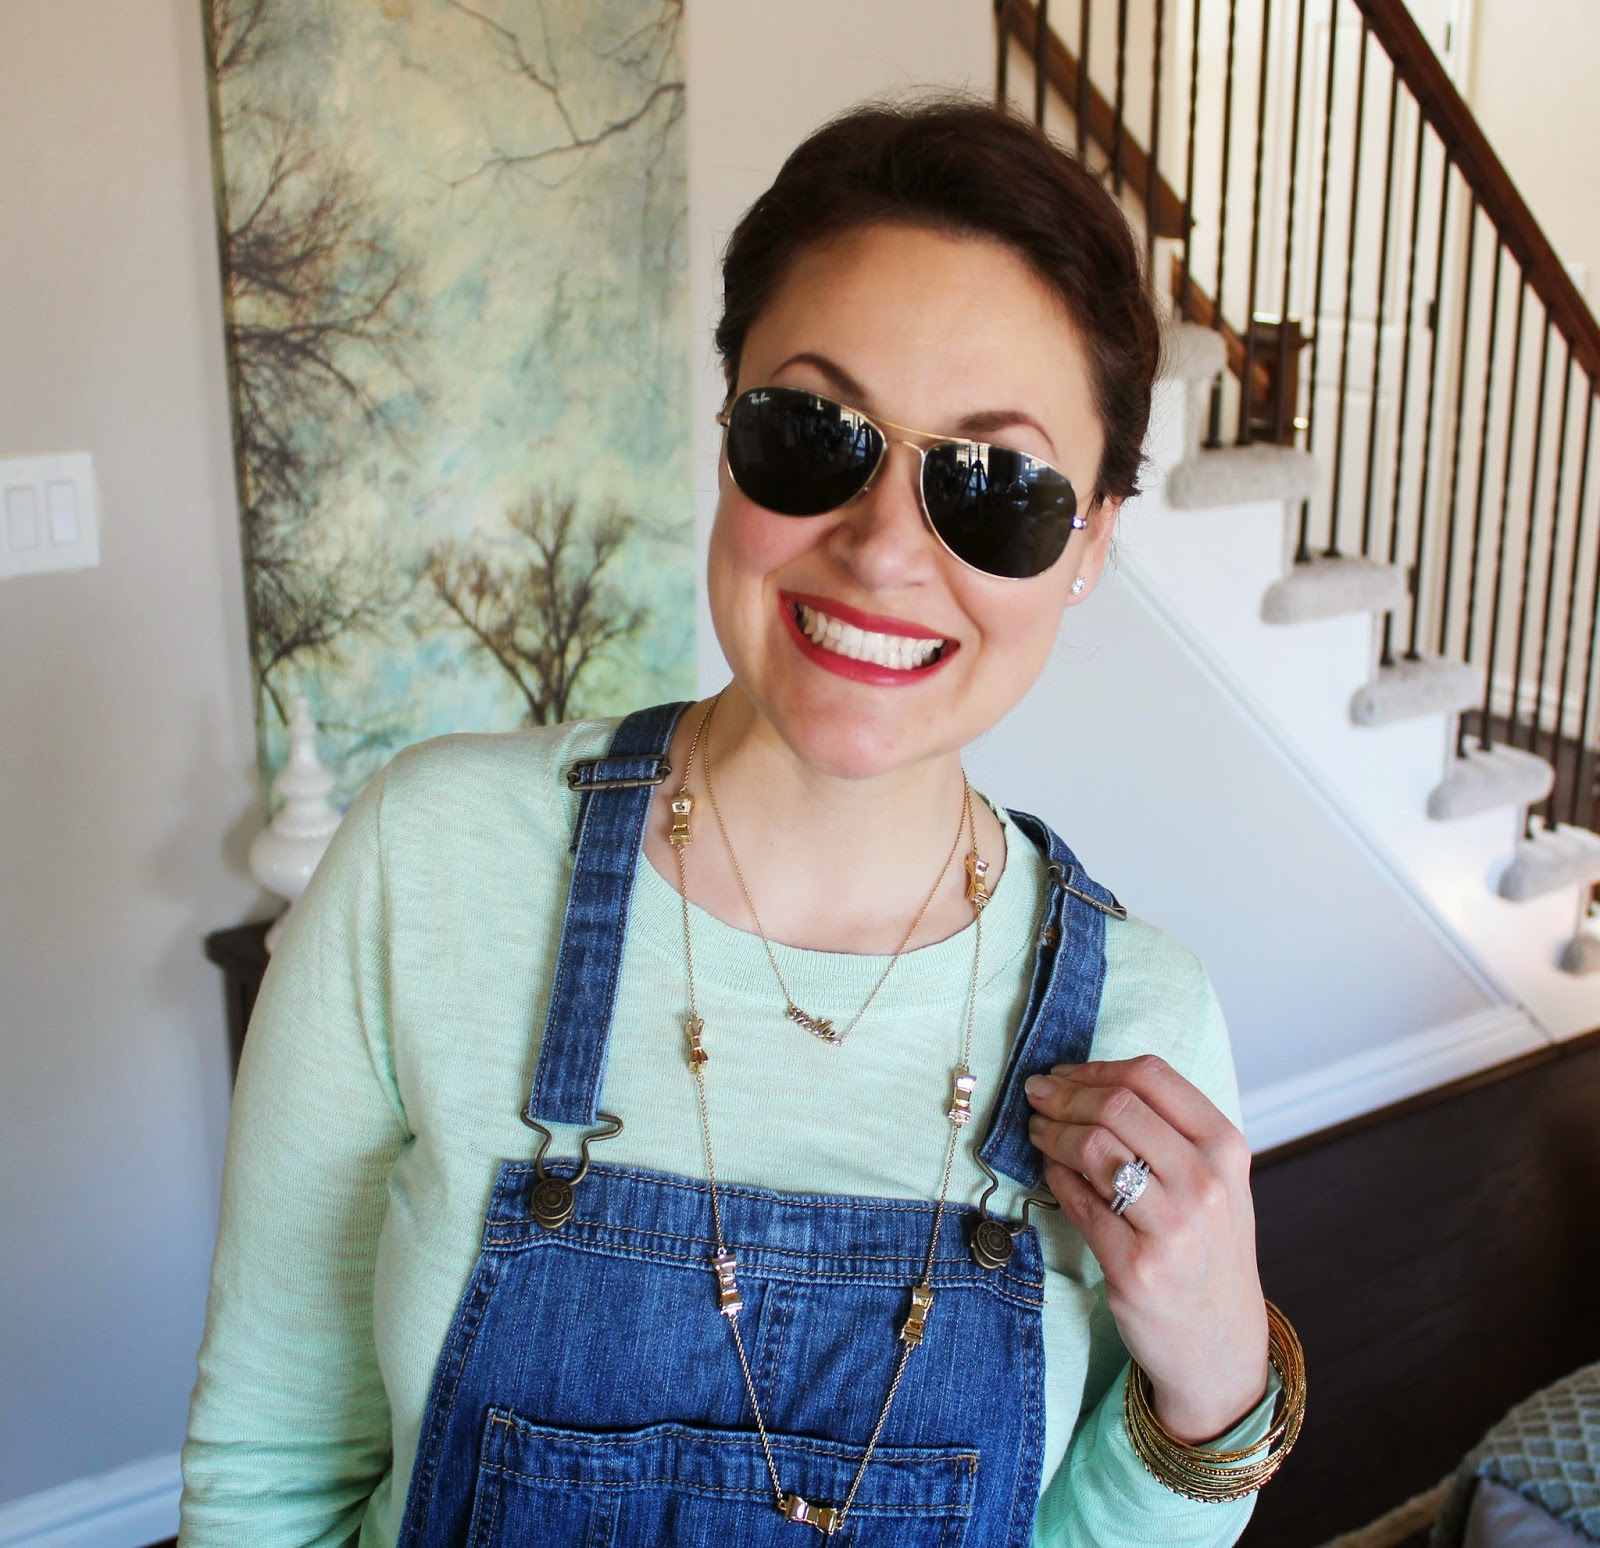 Ray-Ban Aviators, Old Navy Overalls, Kate Spade Bow Necklace, Smile Necklace, Jcrew Sweater, Mint